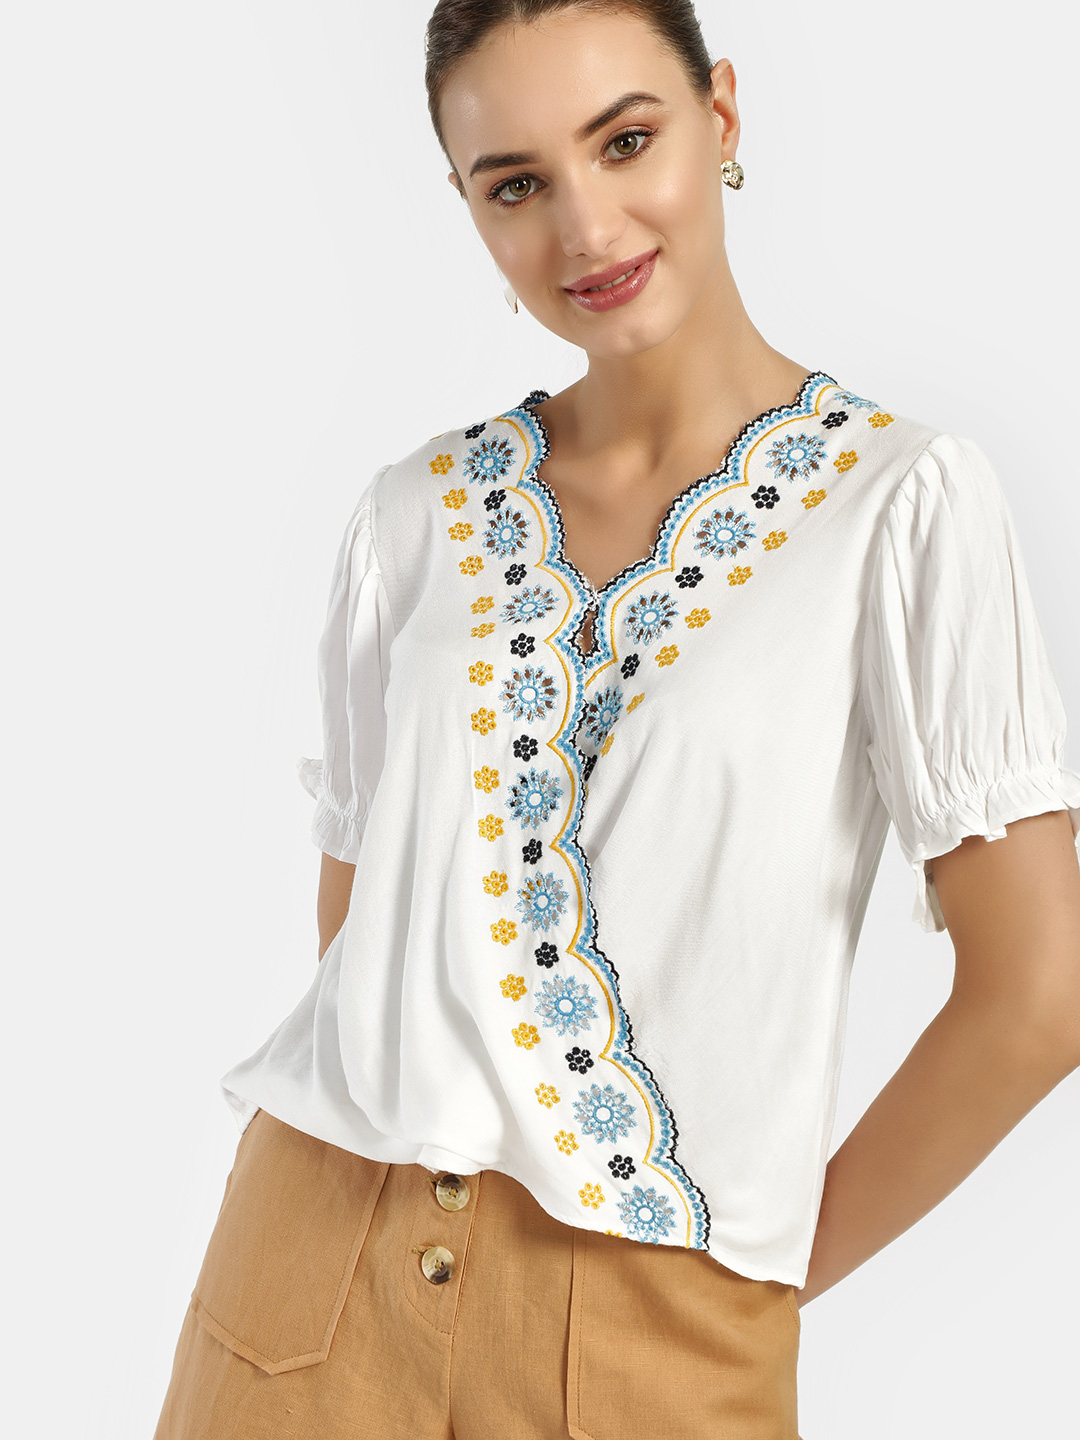 Rena Love White Broderie Scalloped Edge Wrap Blouse 1